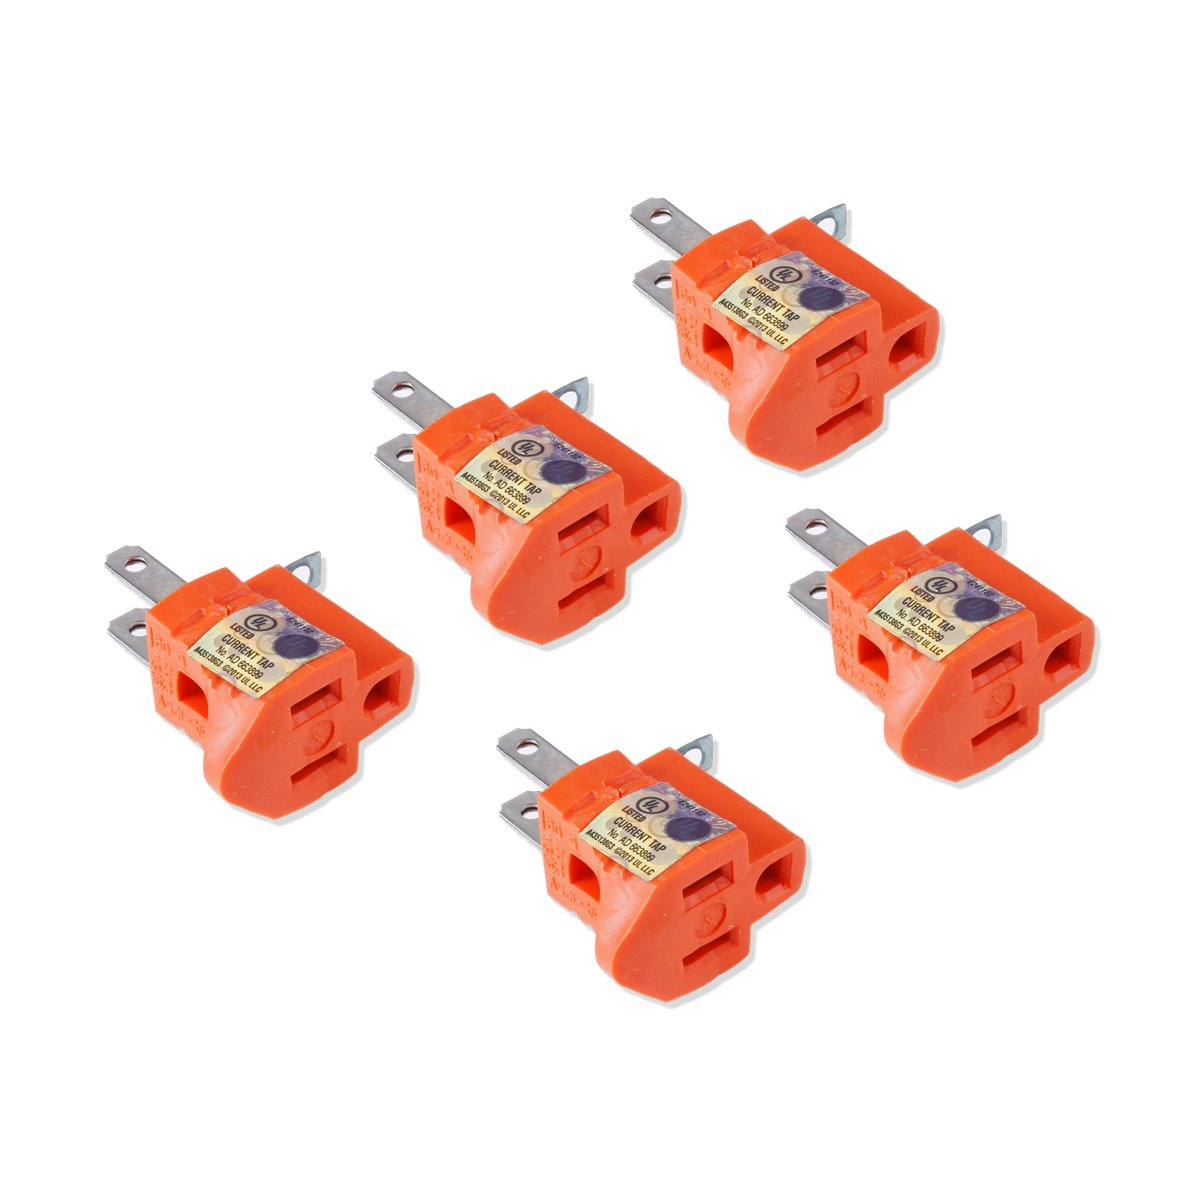 Cheap 3 Prong Electrical Plug Wiring Find Ac Power Get Quotations Flexzion To 2 Adapter 5 Pack Pin